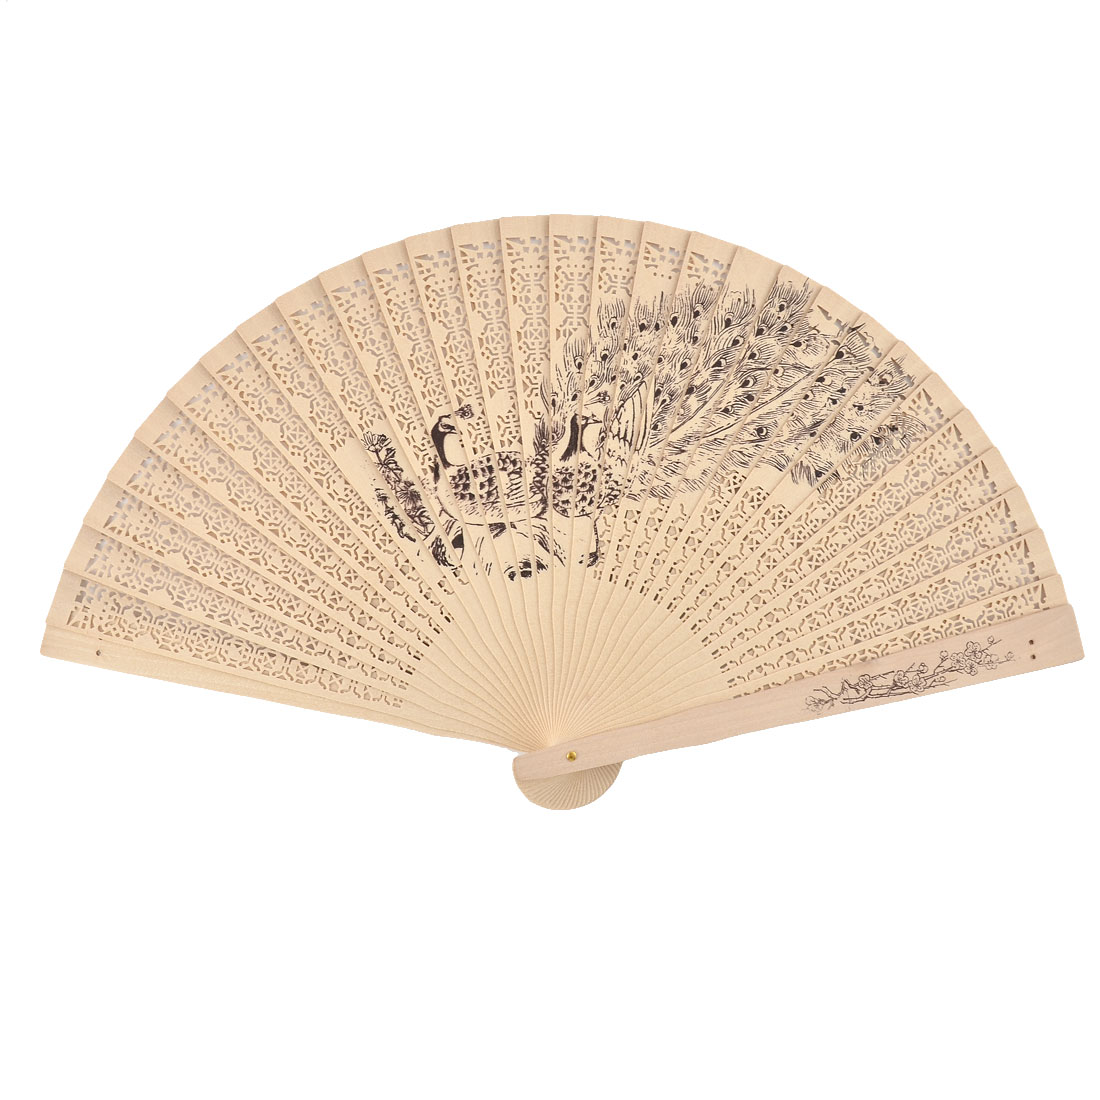 Chinese Wedding Party Wooden Peacock Pattern Hollow Out Scented Folding Hand Fan Beige